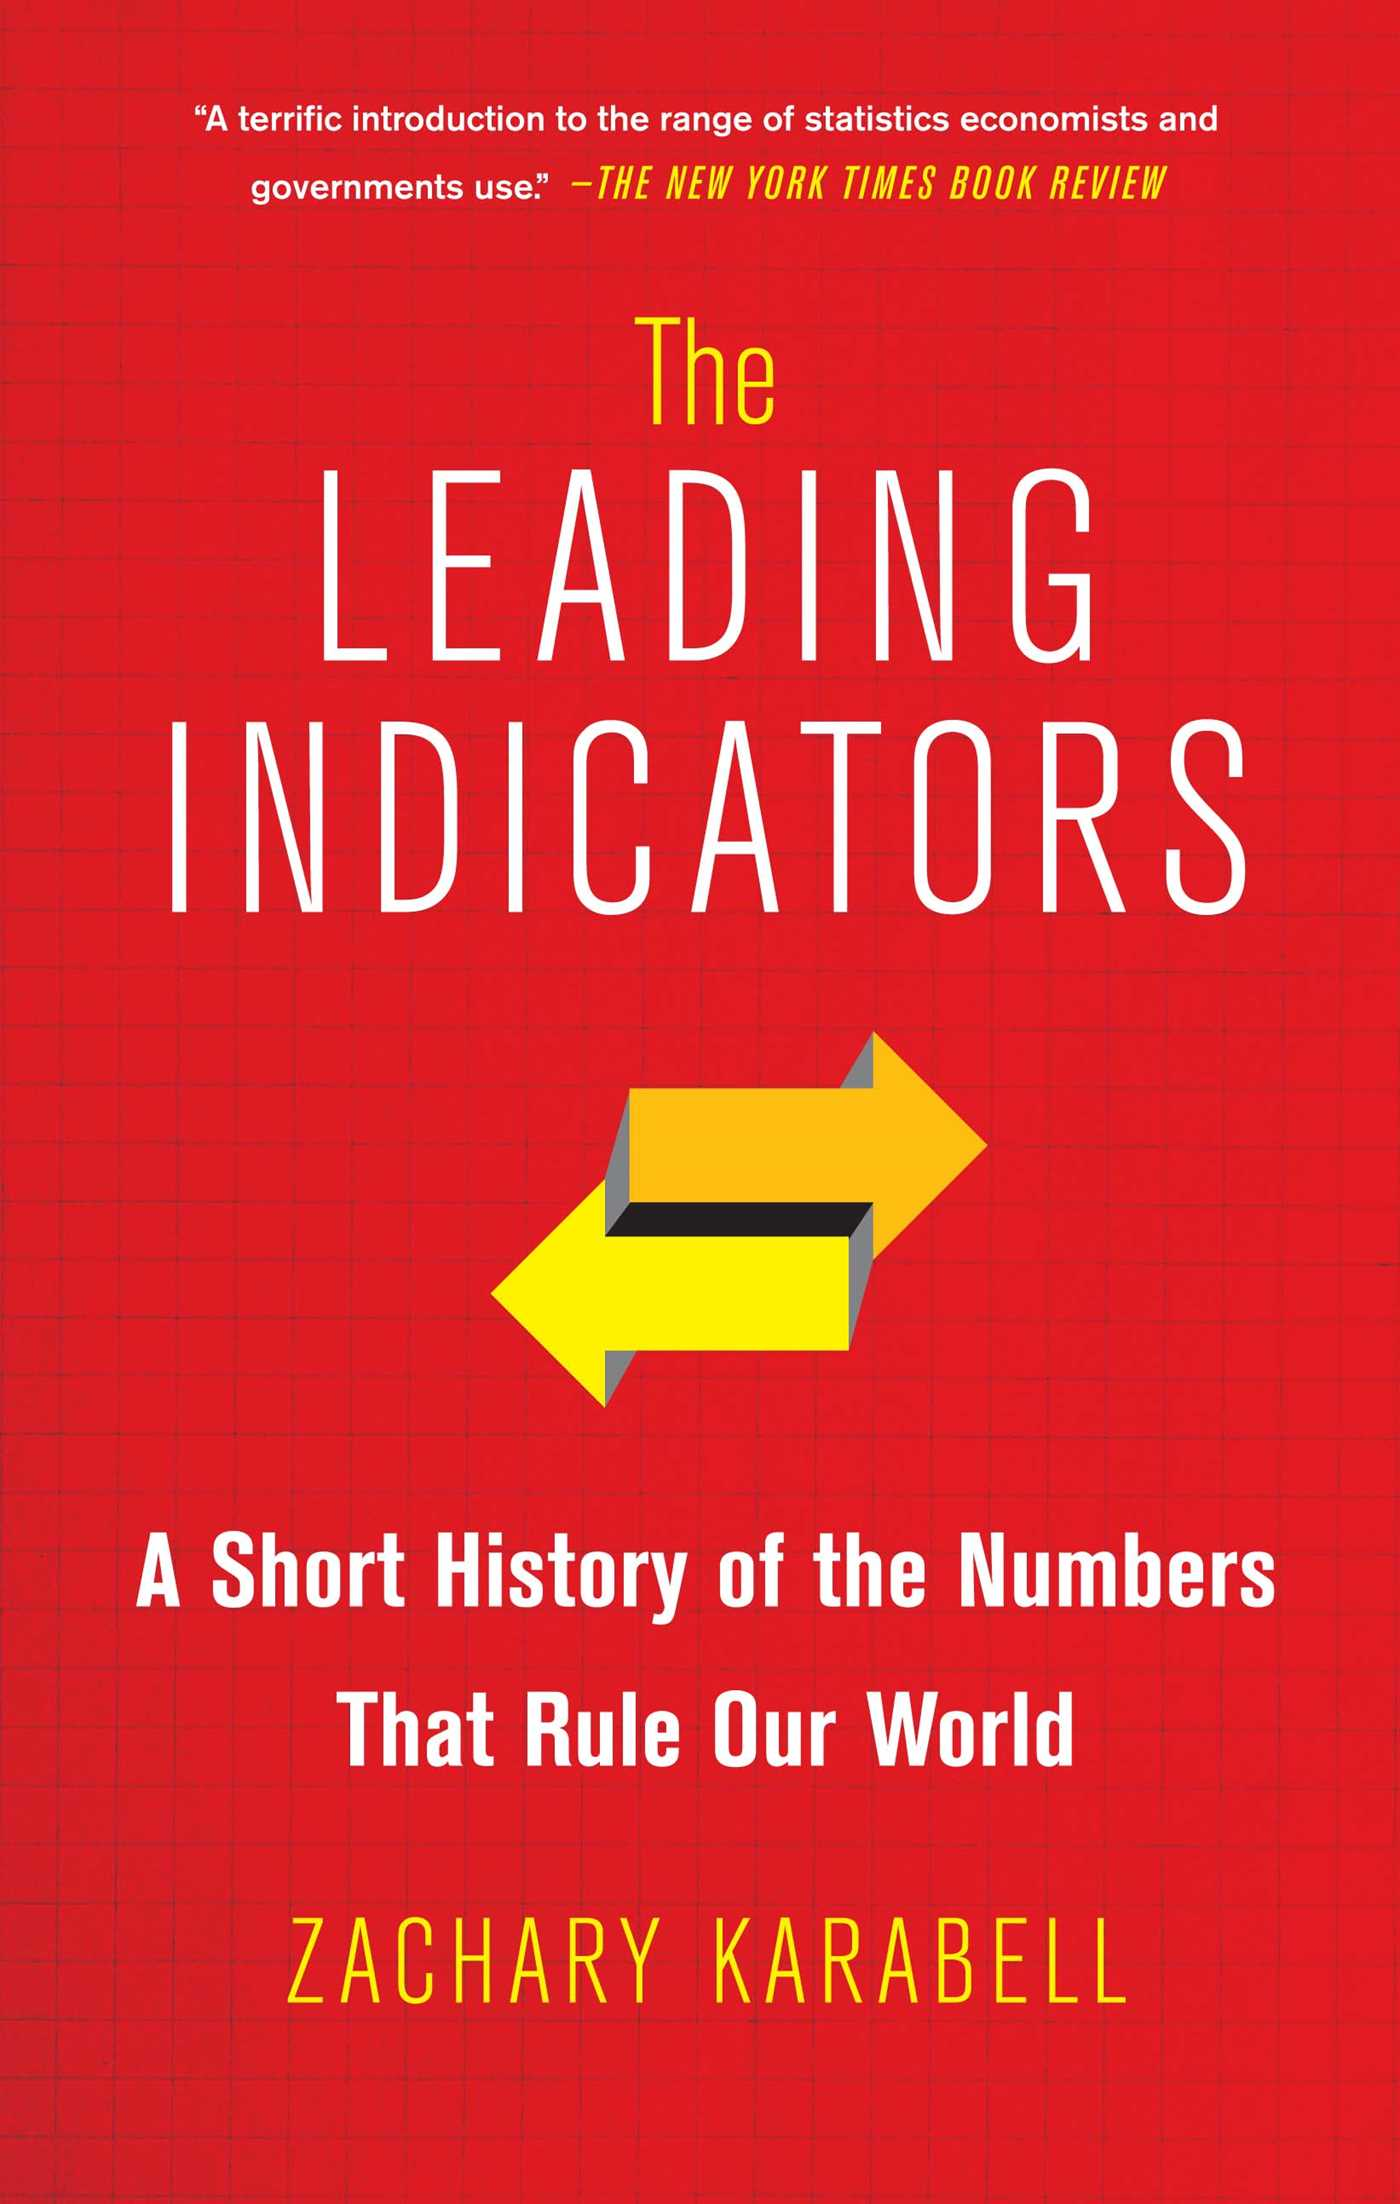 The-leading-indicators-9781451651225_hr